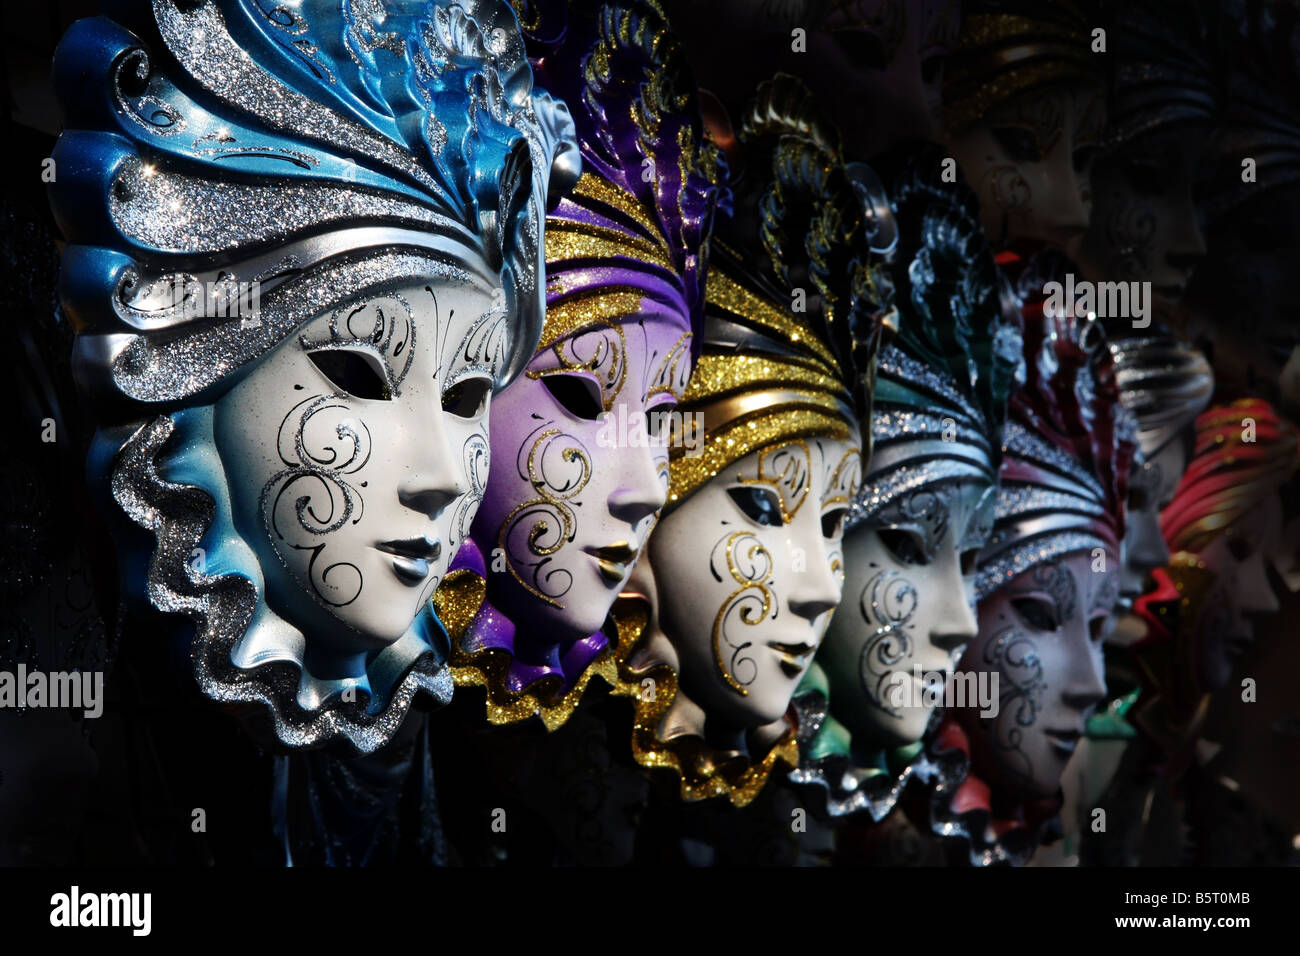 Row of venetian masks in gold and blue - Stock Image